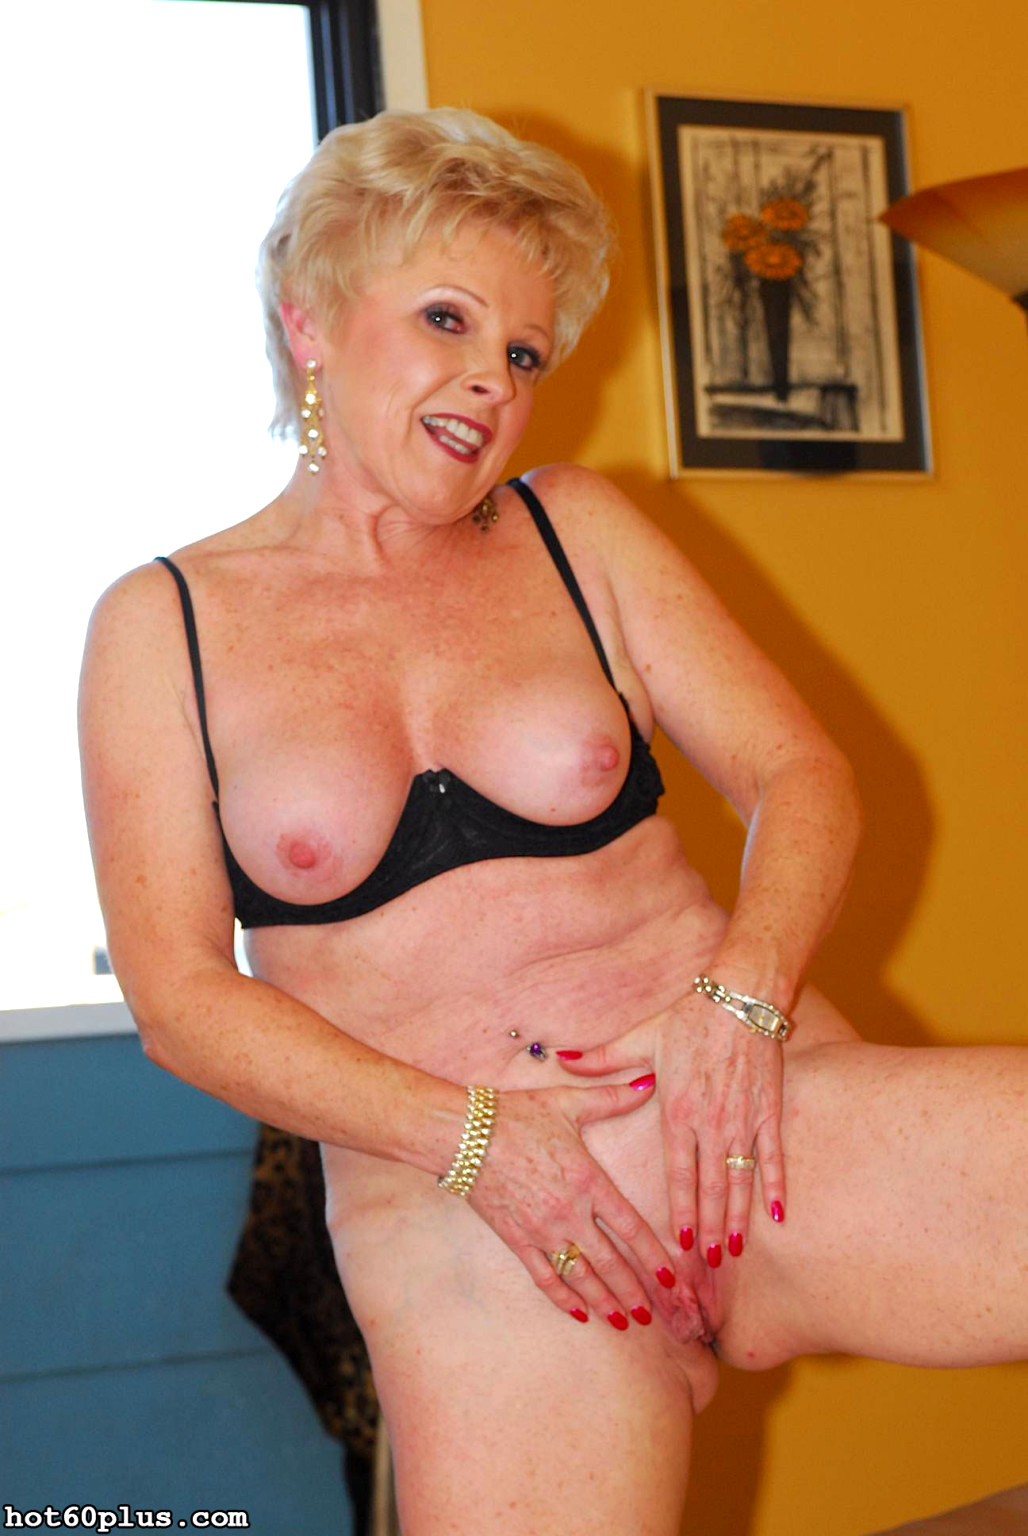 Babe Today Hot 60 Plus Hot60Plus Model Sweet Granny Sex -1995